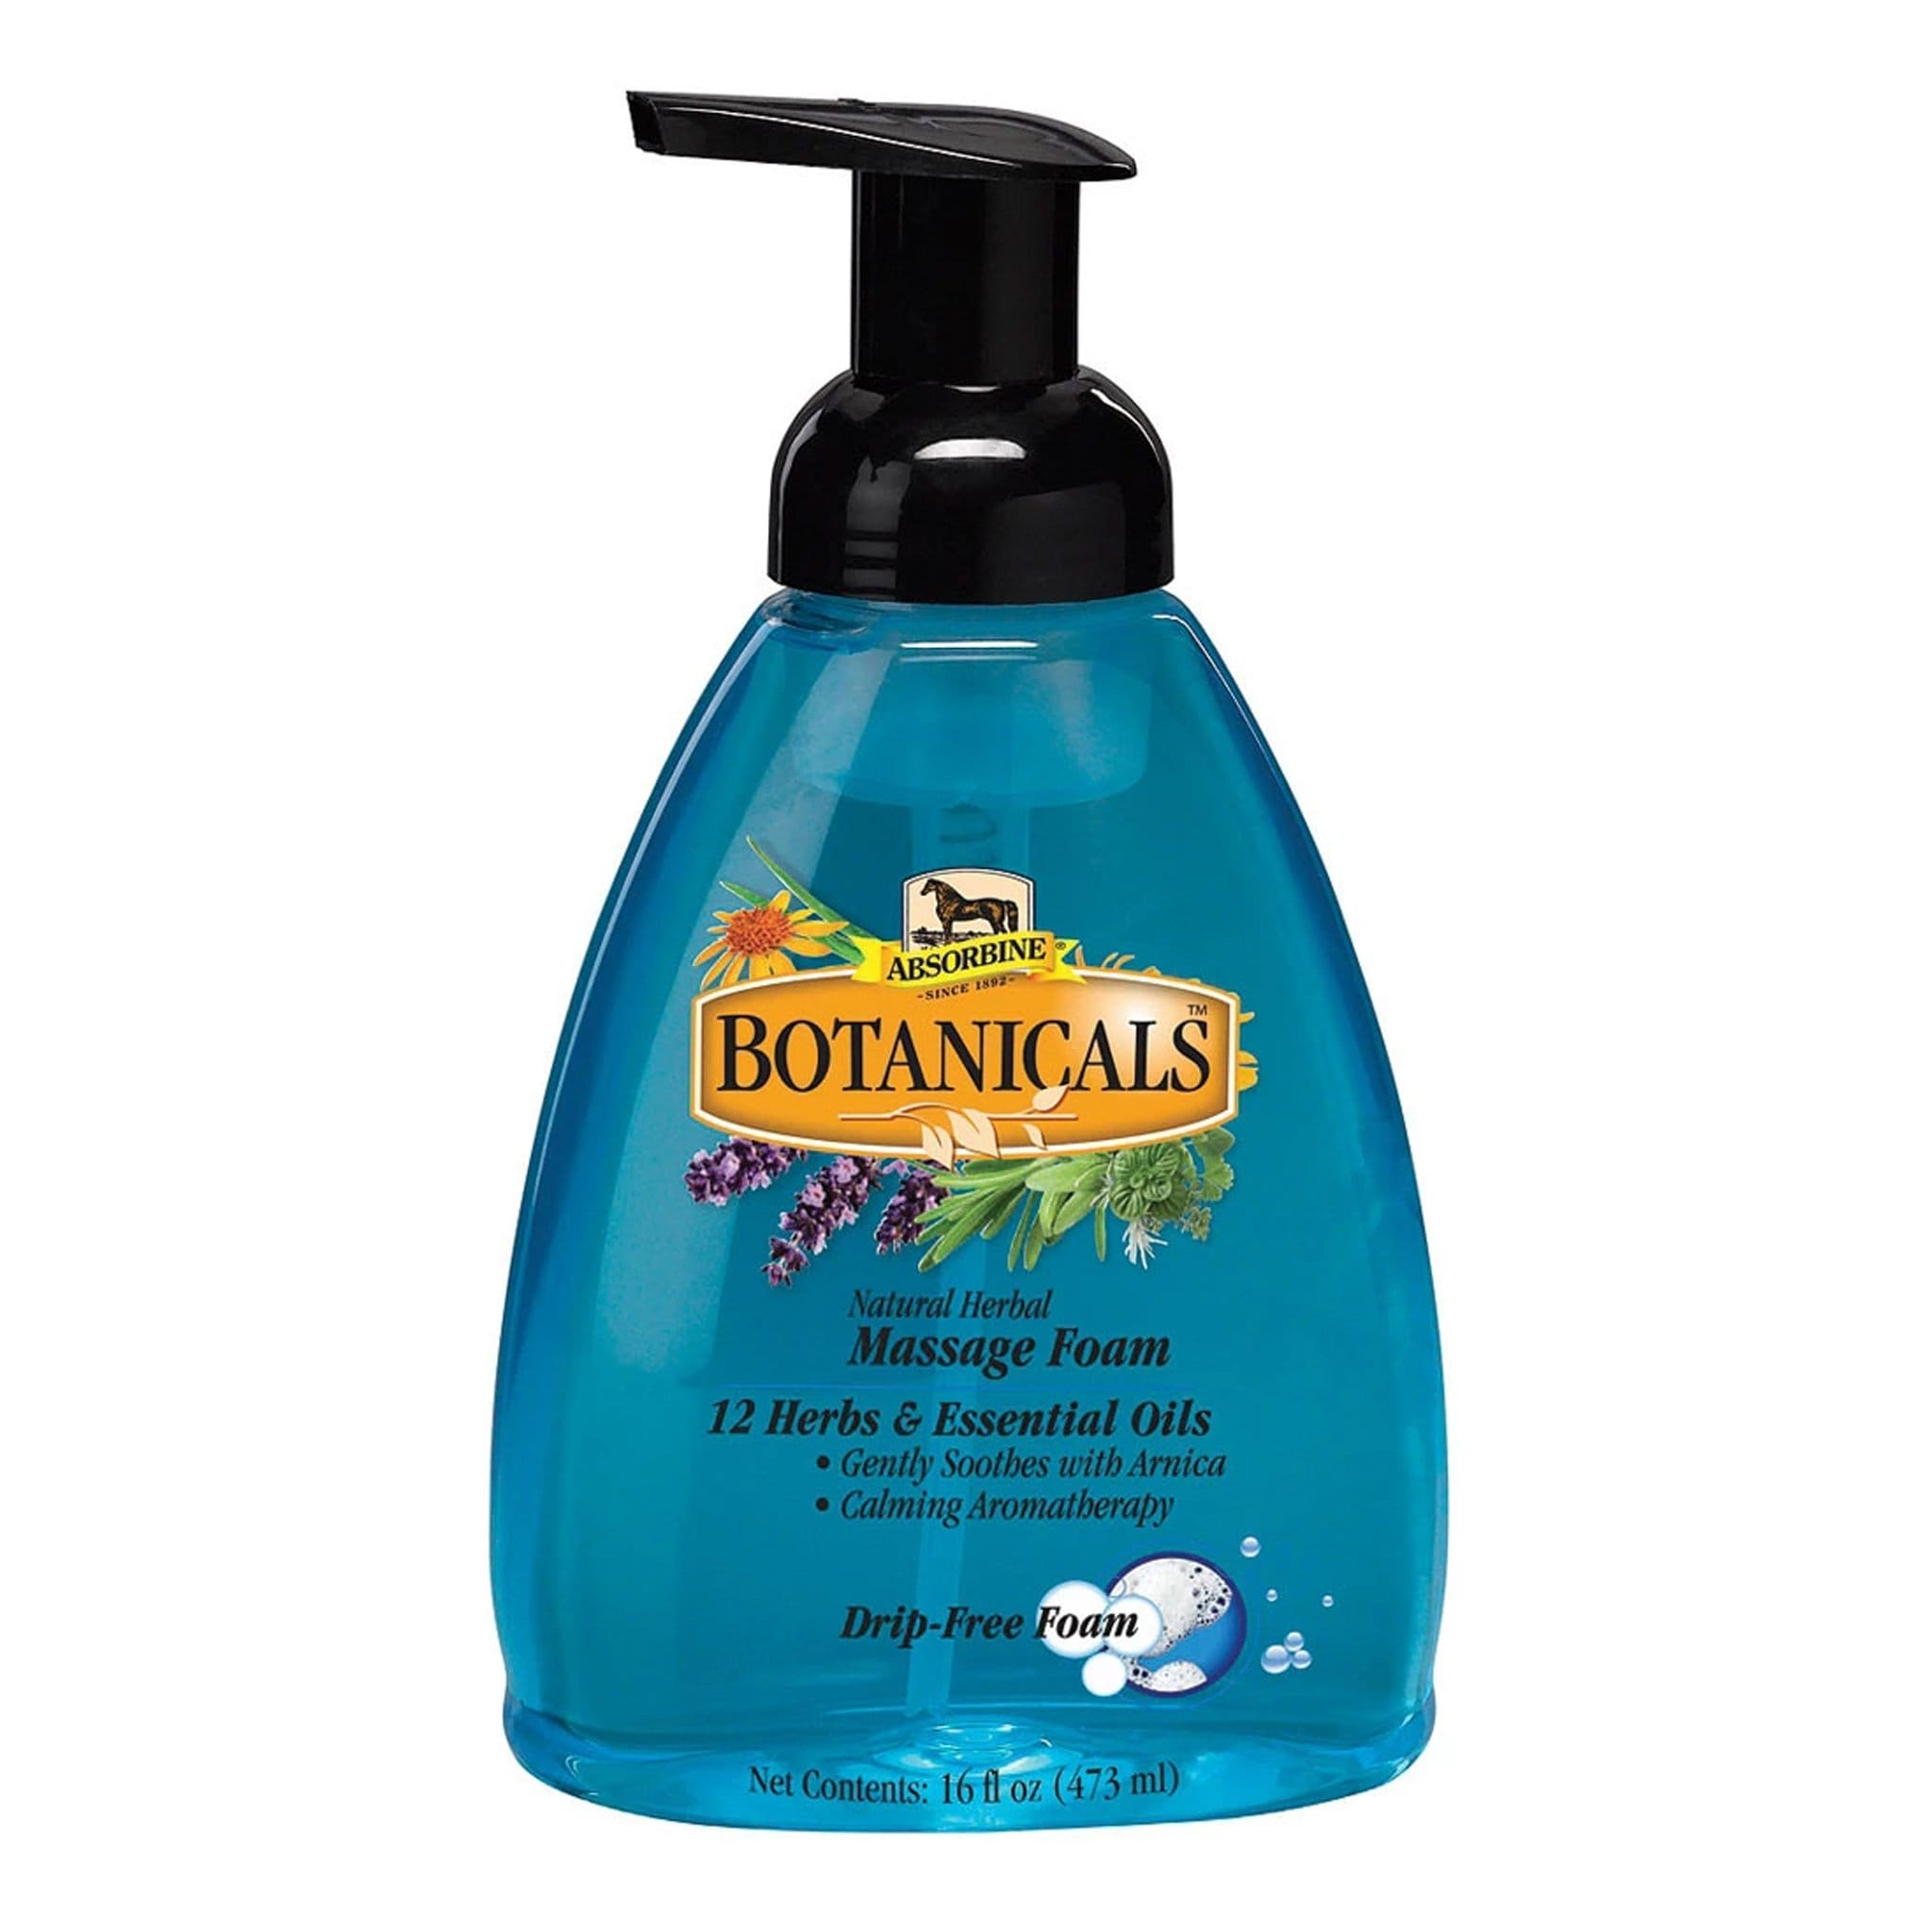 Absorbine Botanicals Natural Herbal Massage Foam 9282.